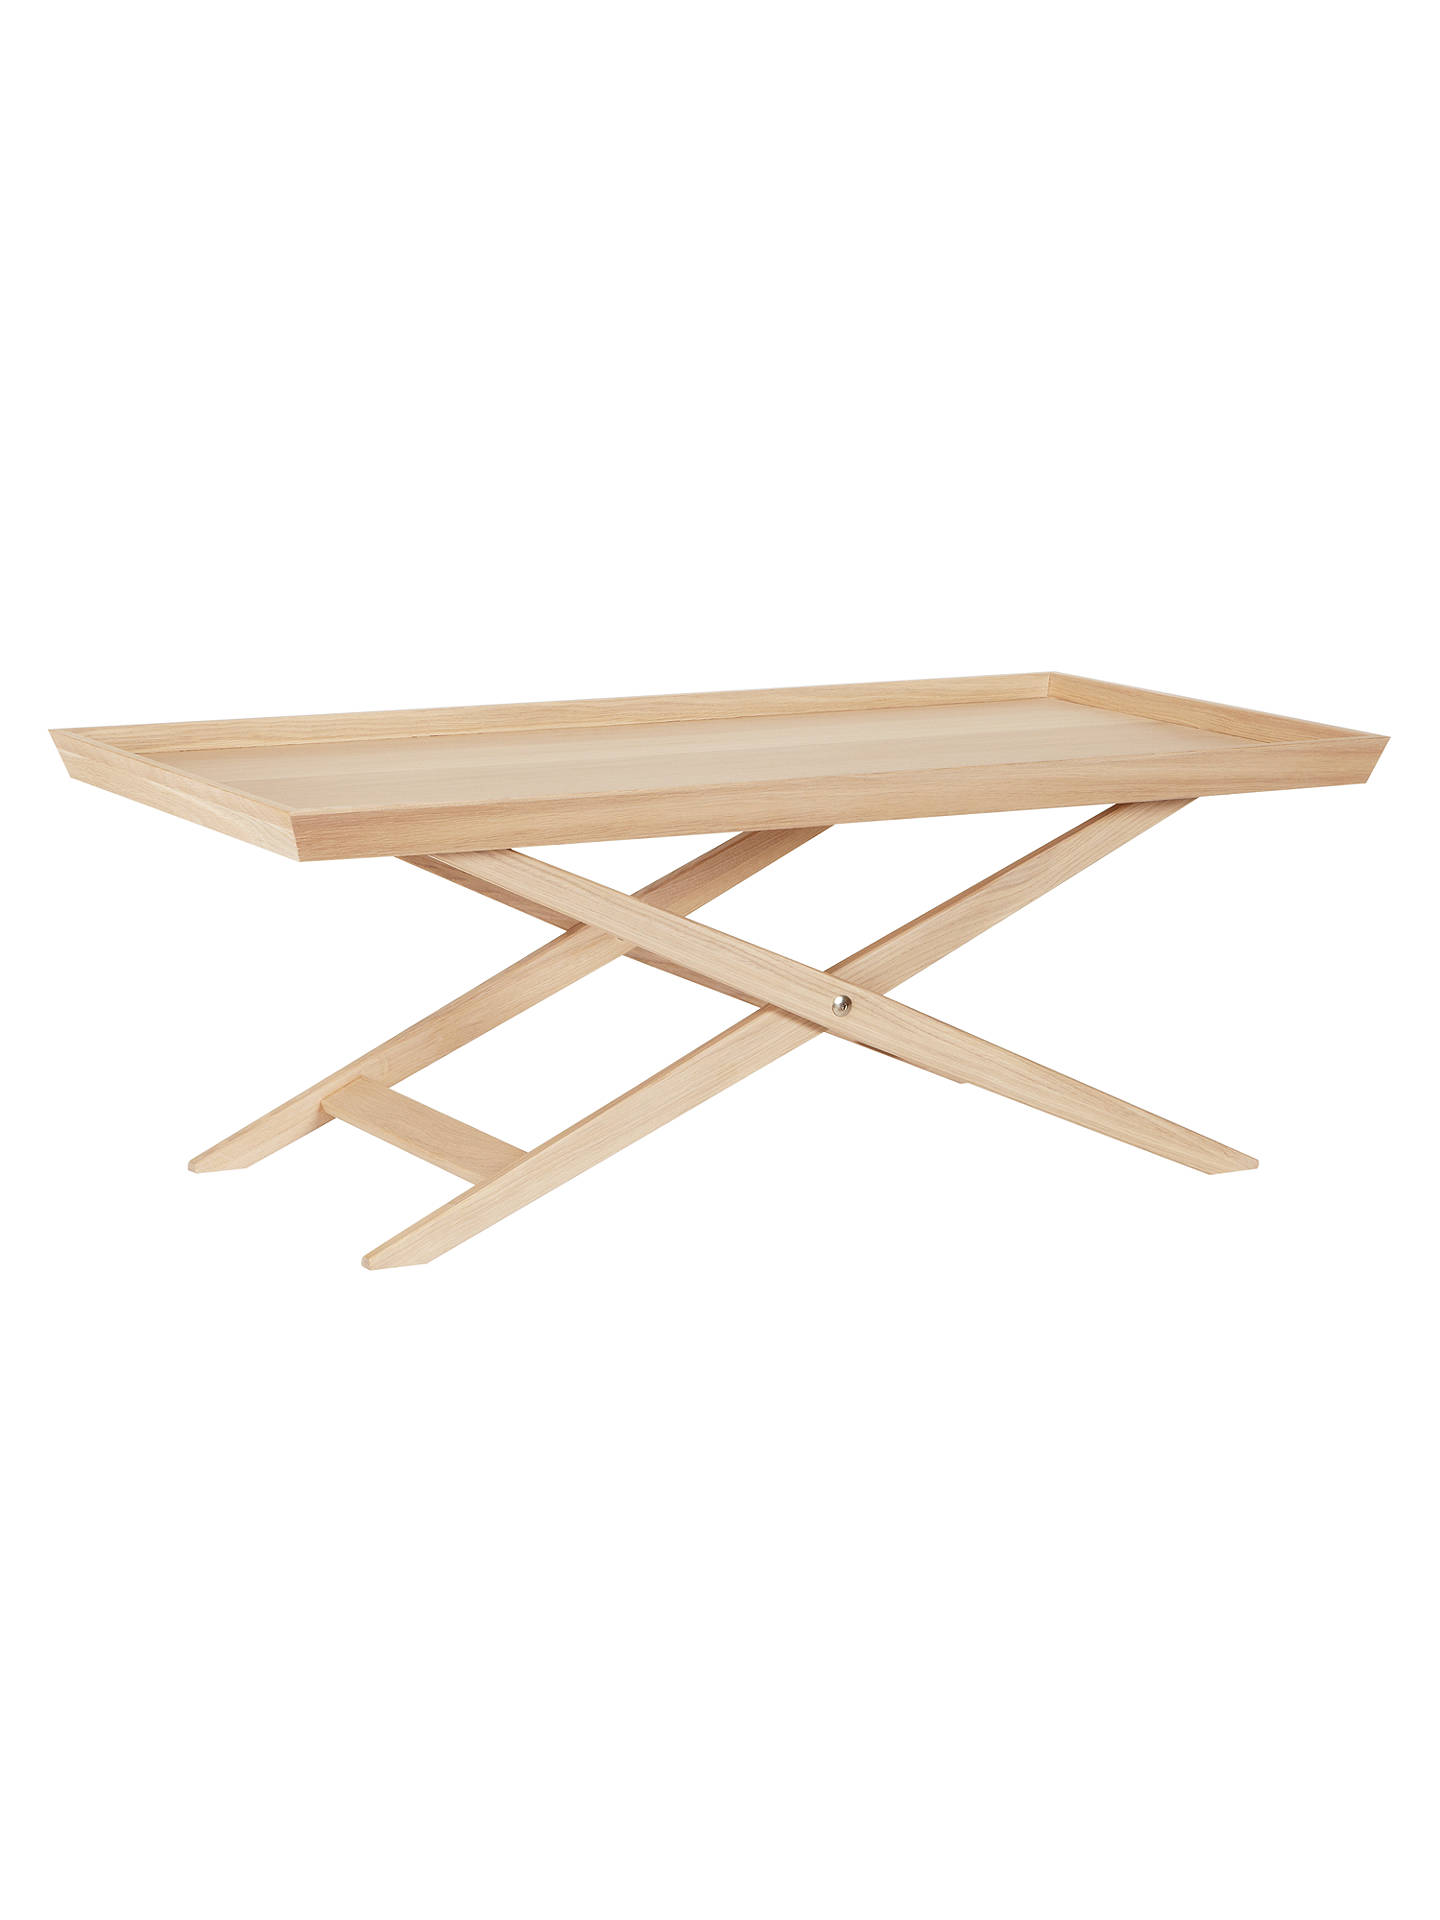 Buy John Lewis Croft Collection Eden Coffee Table Online at johnlewis.com